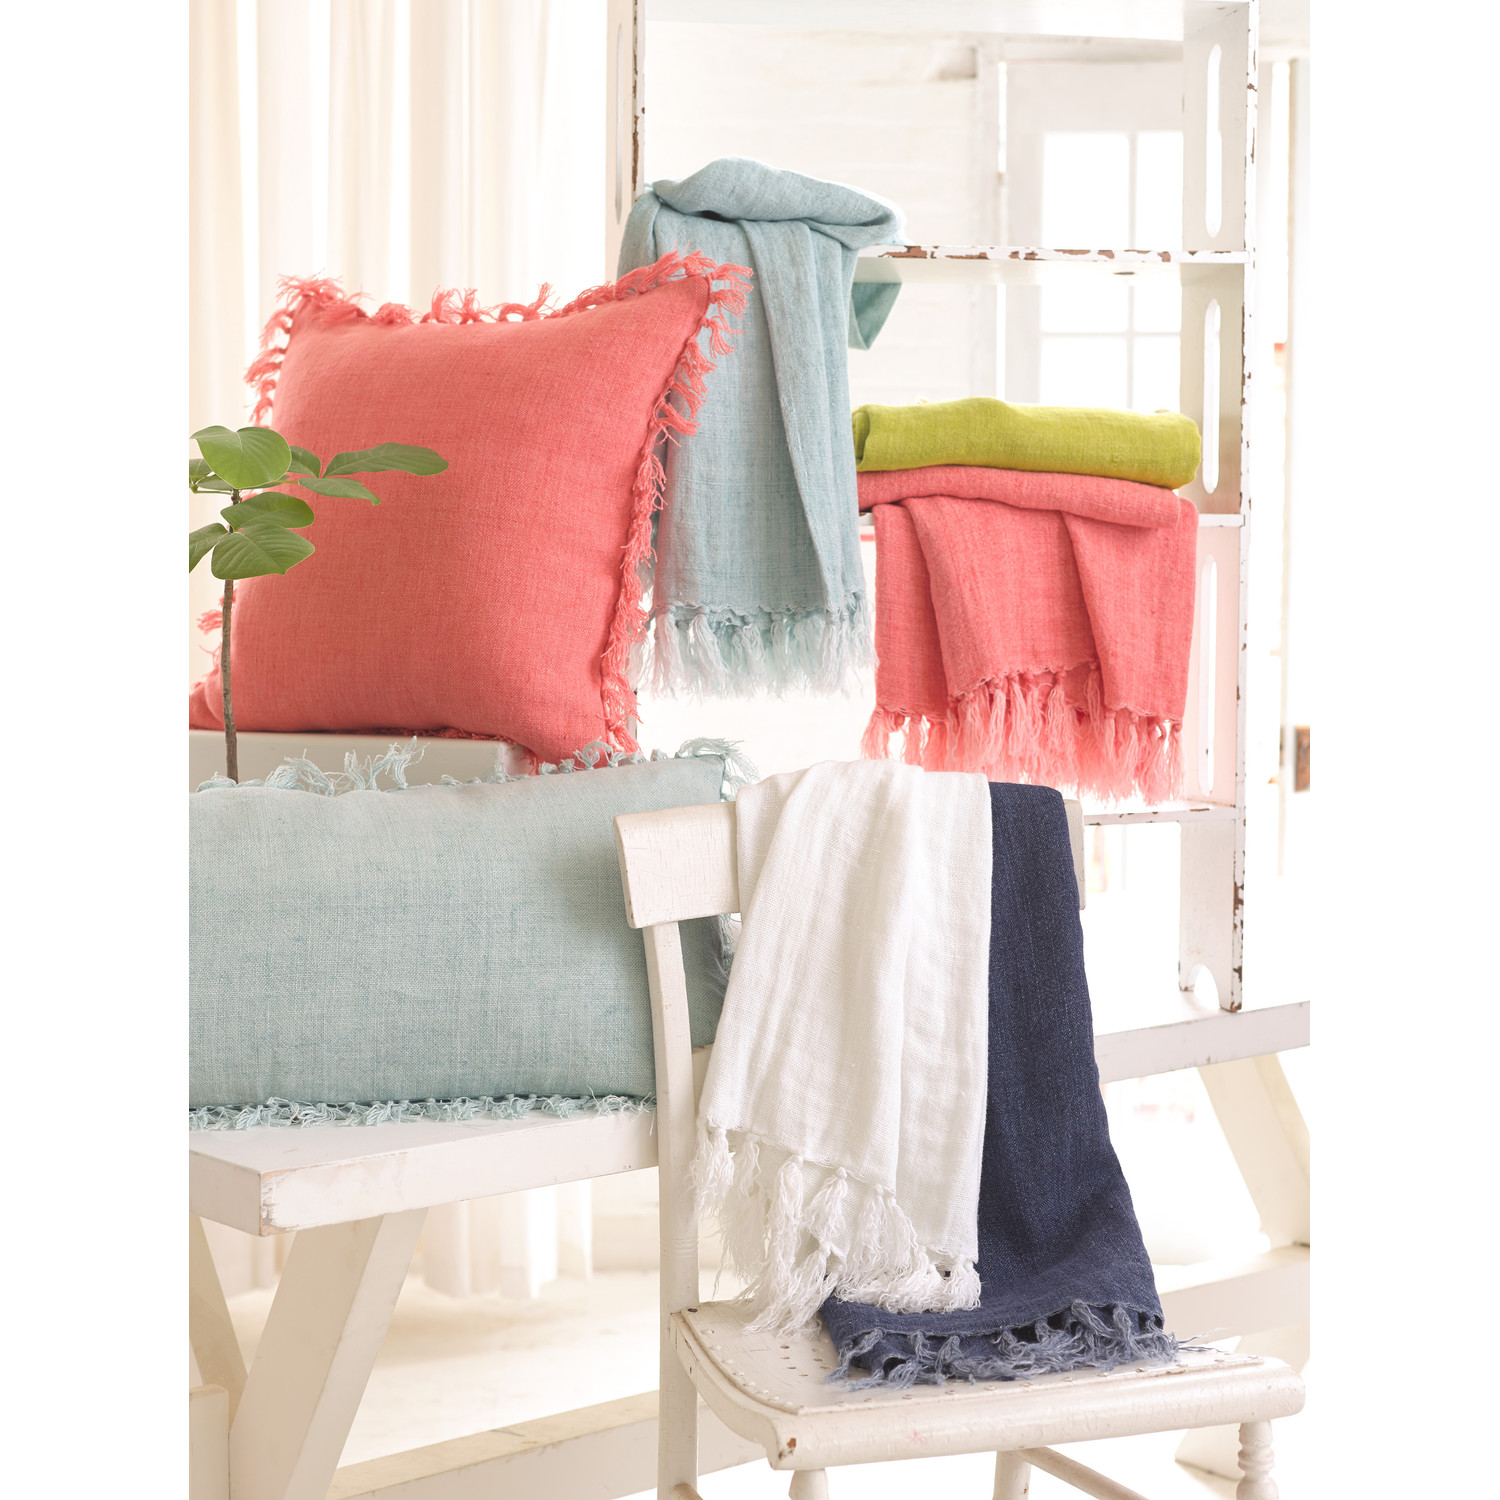 charming pine cone hill laundered linen throw for bed ideas